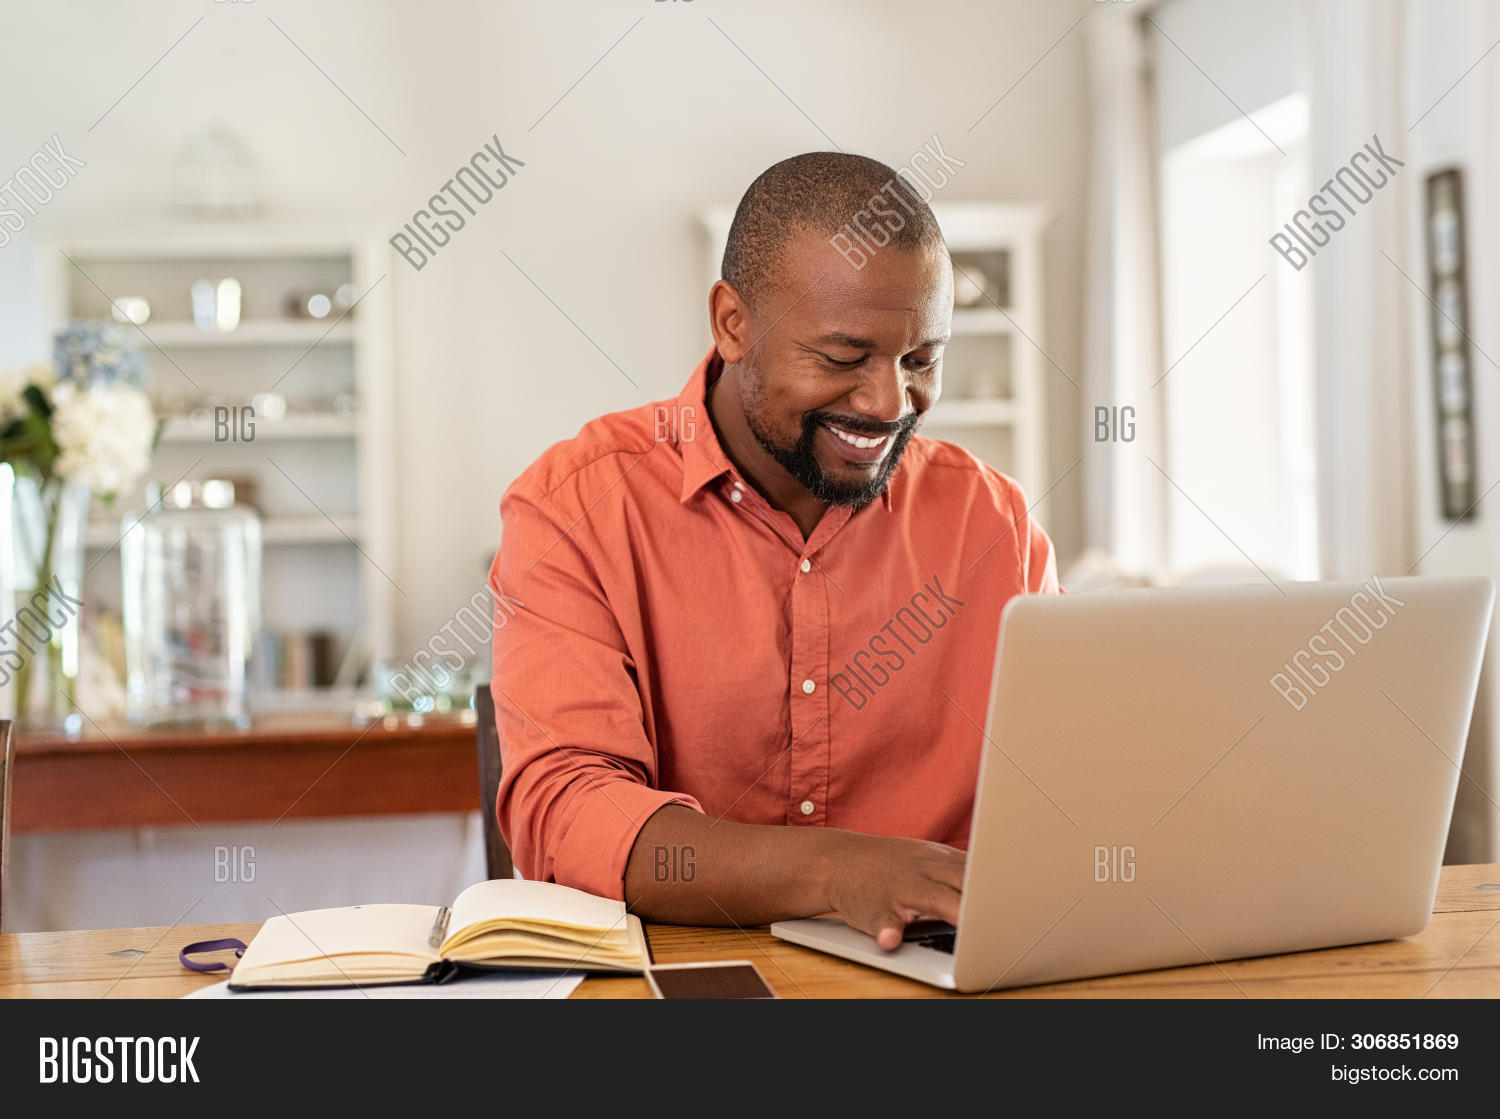 Smiling black man using laptop at home in living room. Happy mature businessman send email and worki